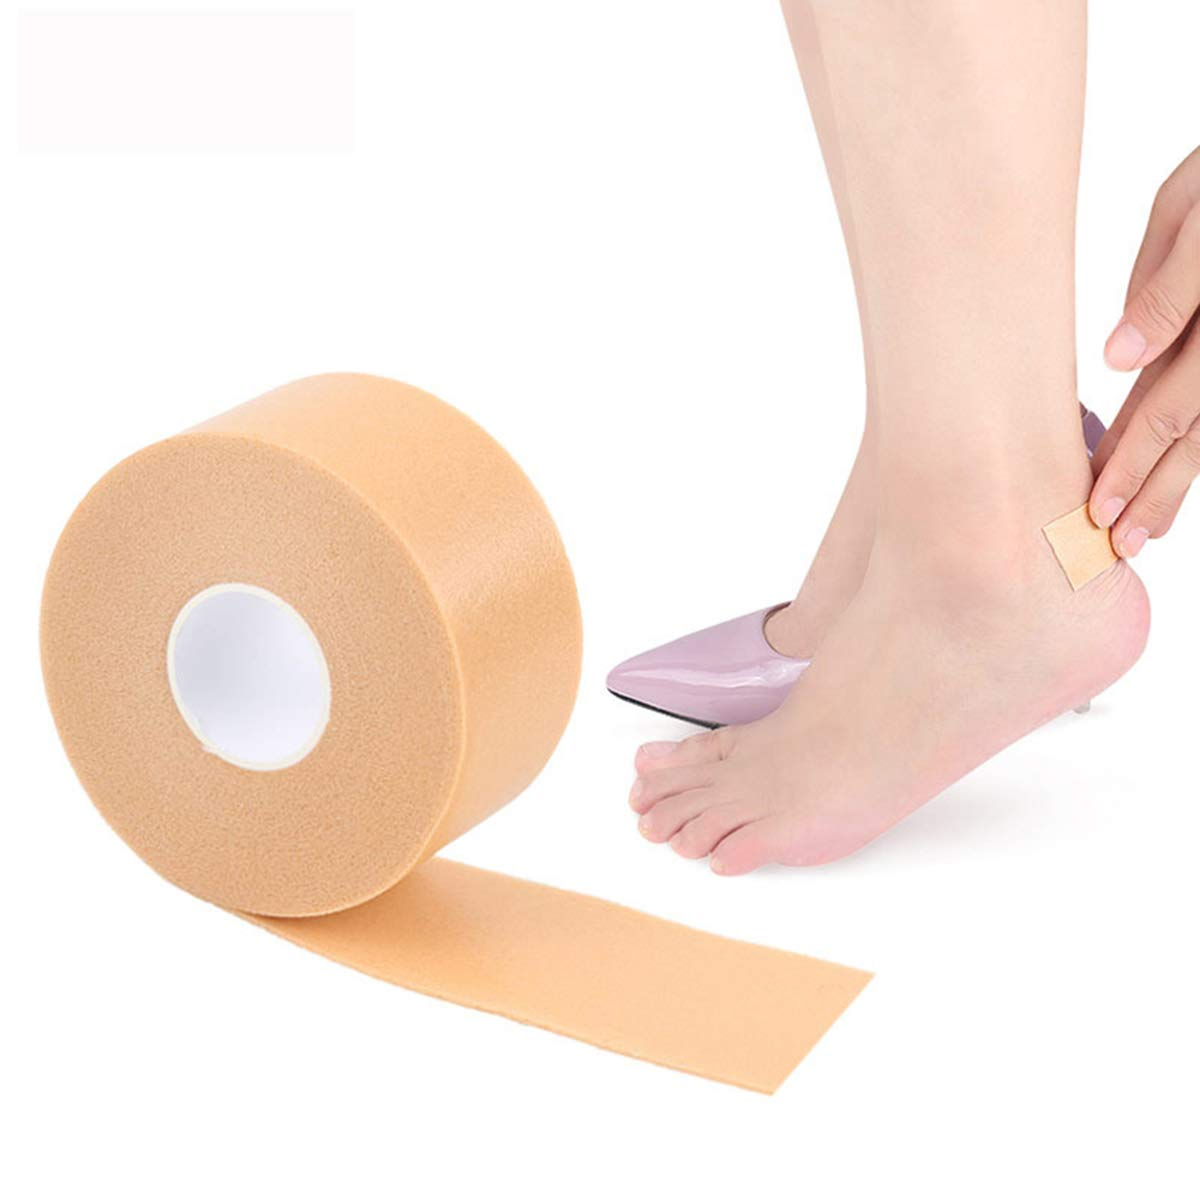 c09a254ea13 Amazon.com: Blister Tape Moleskin Roll Blister Prevention Patches ...